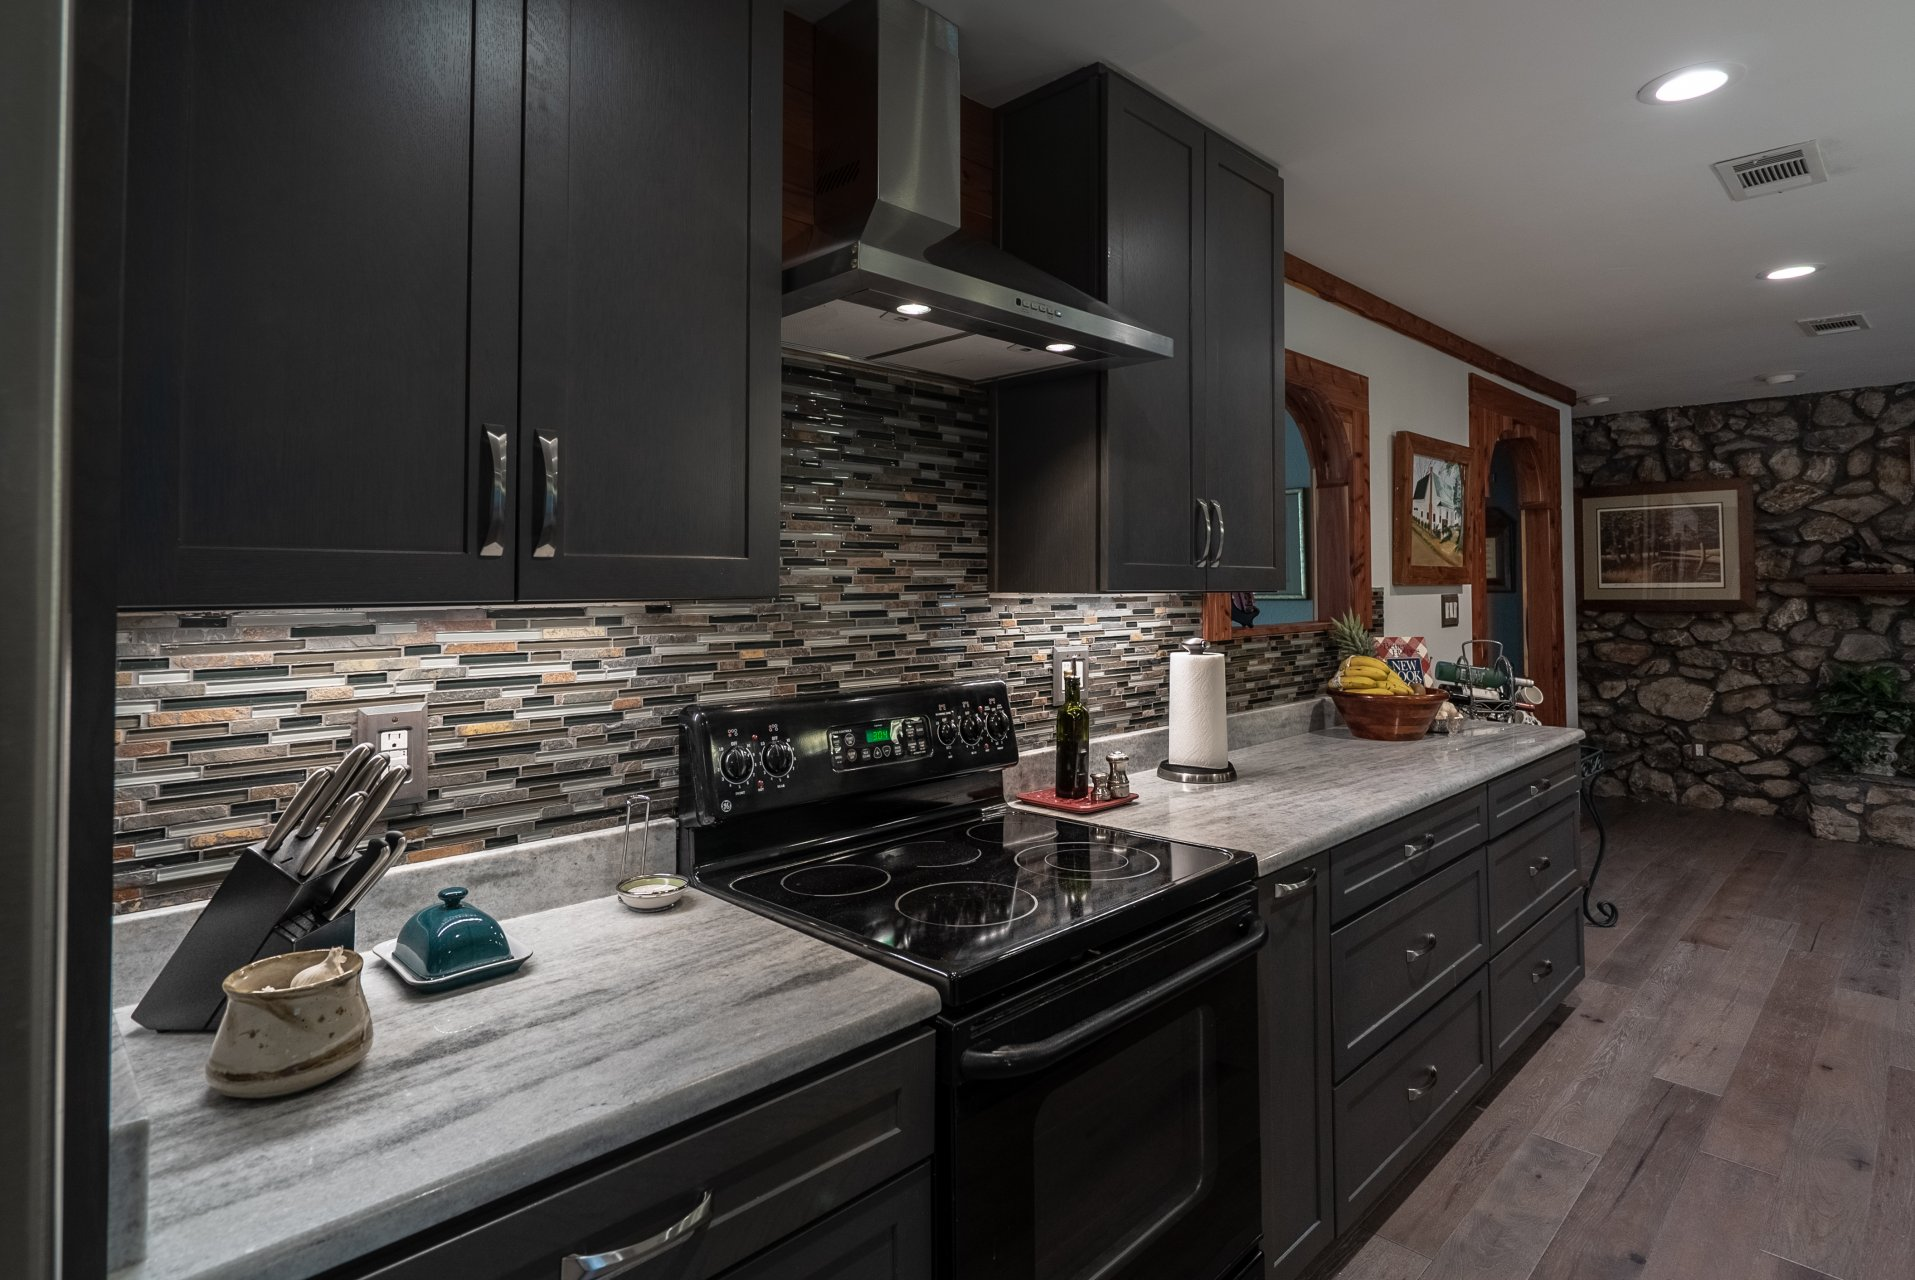 Kitchen and Dining Room Remodel - oak cabinets in Slate